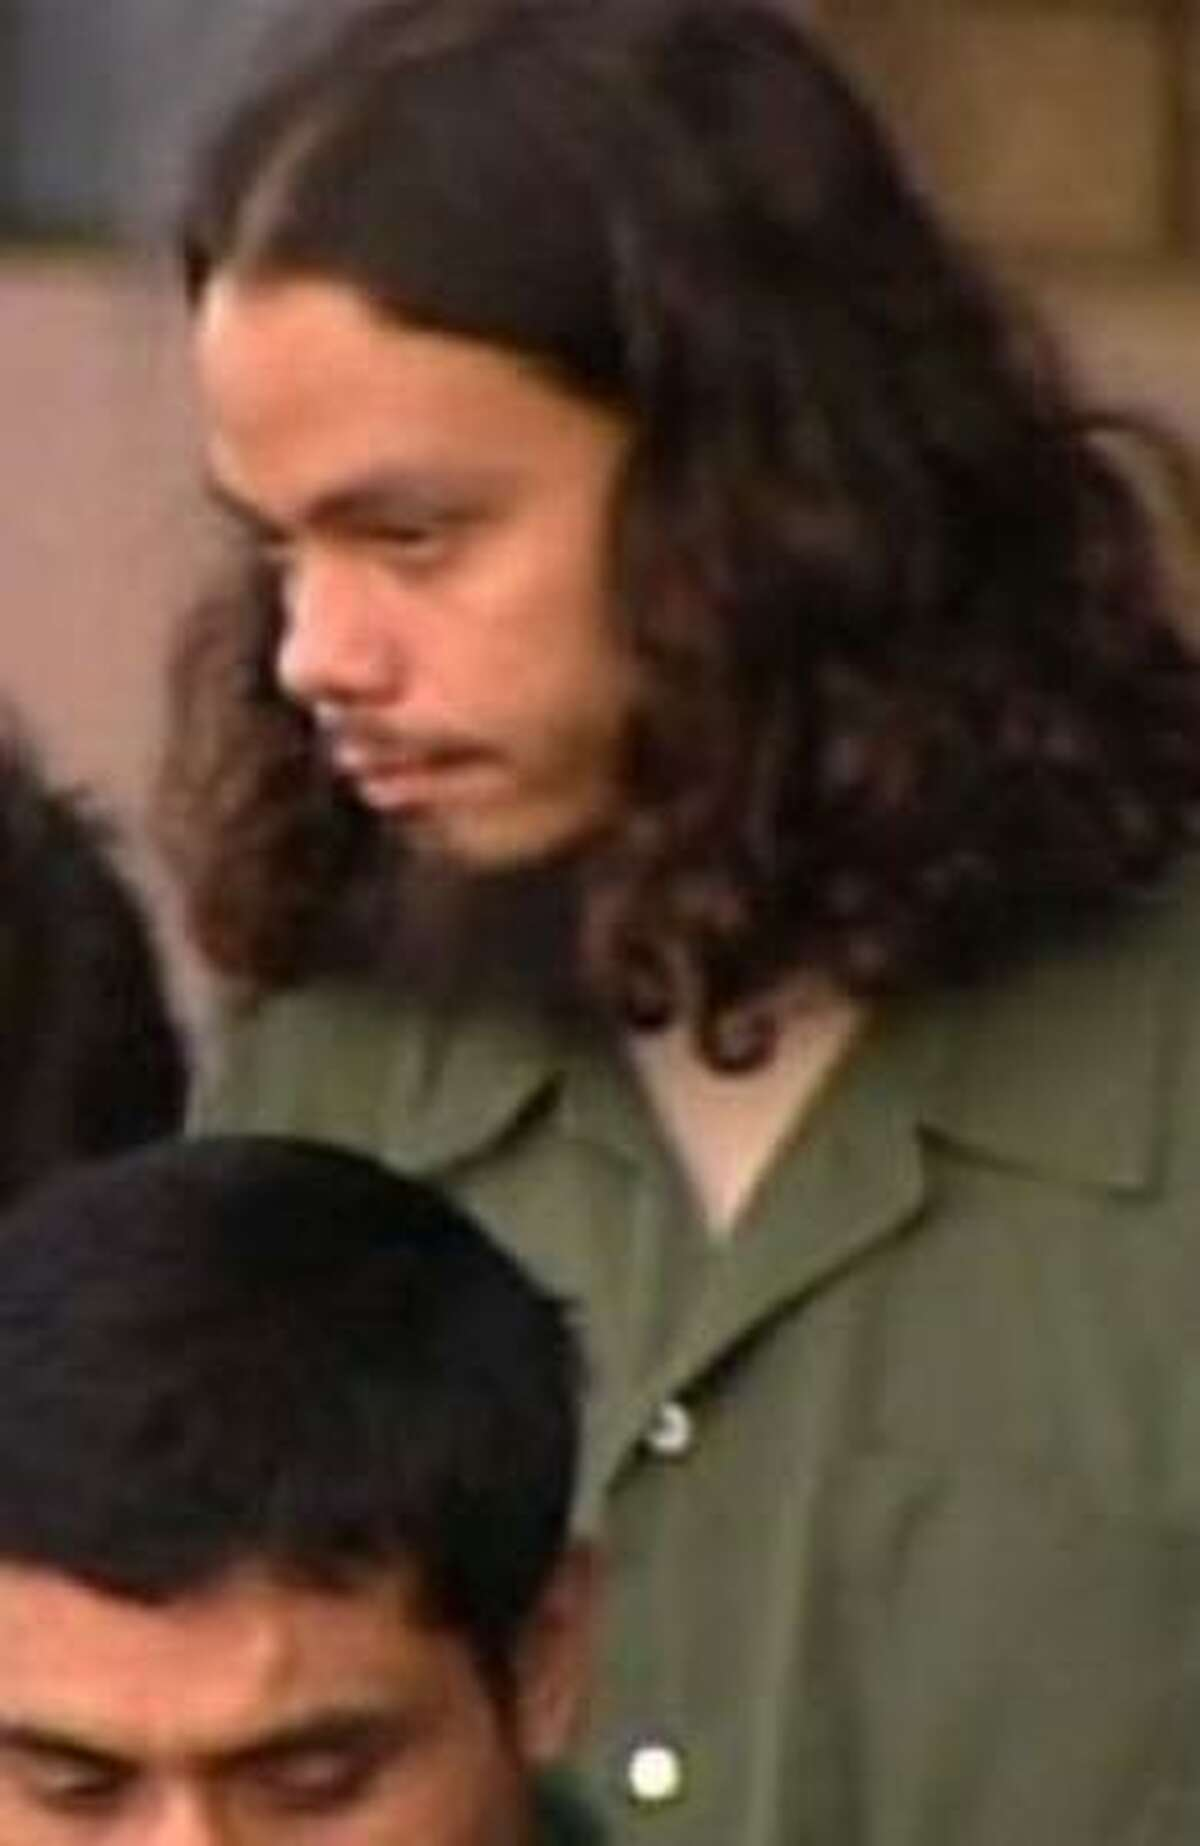 Daniel Maldonado, 28, is charged with conspiring to use a weapon of mass destruction and receiving al-Qaida training.